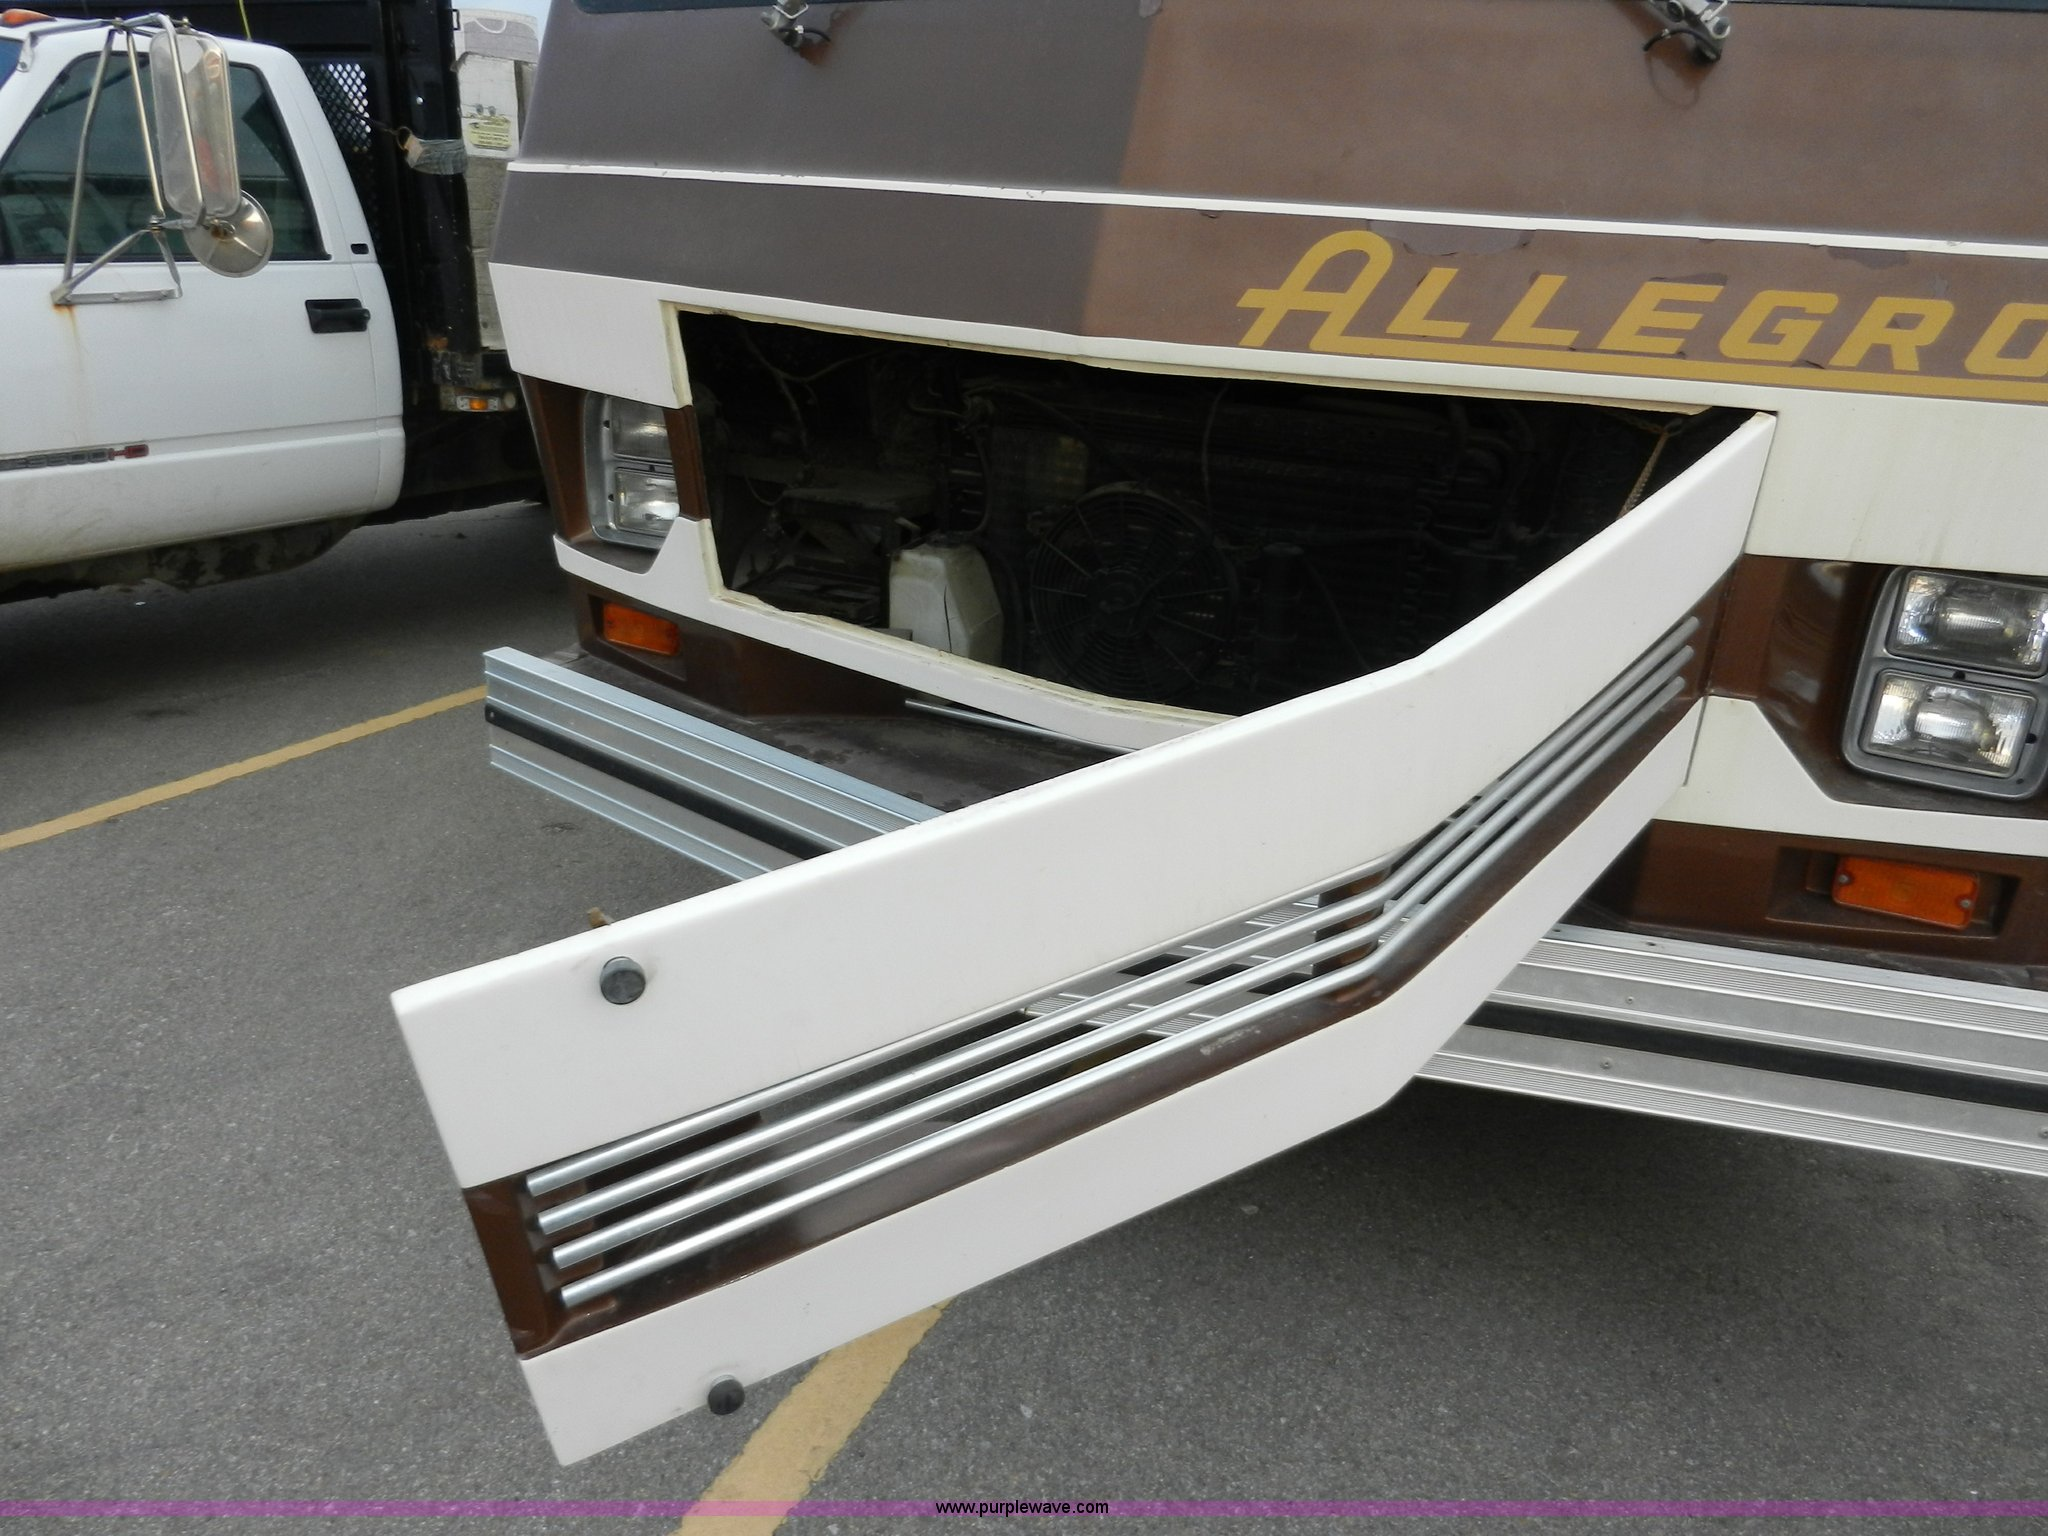 1984 Chevrolet Allegro Tiffin Recreational Vehicle Item